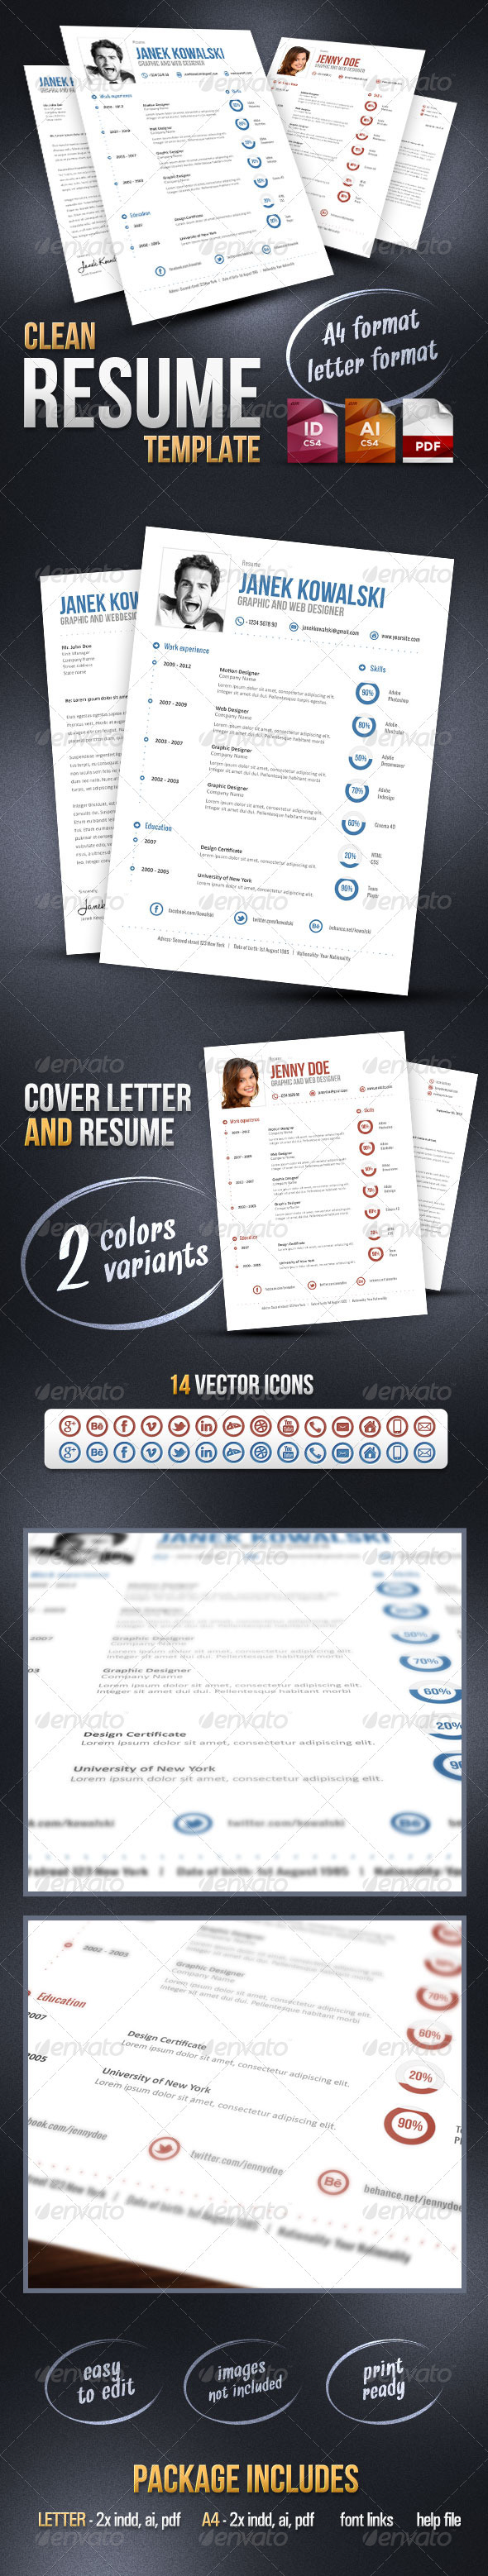 GraphicRiver Clean Resume Template 3003312